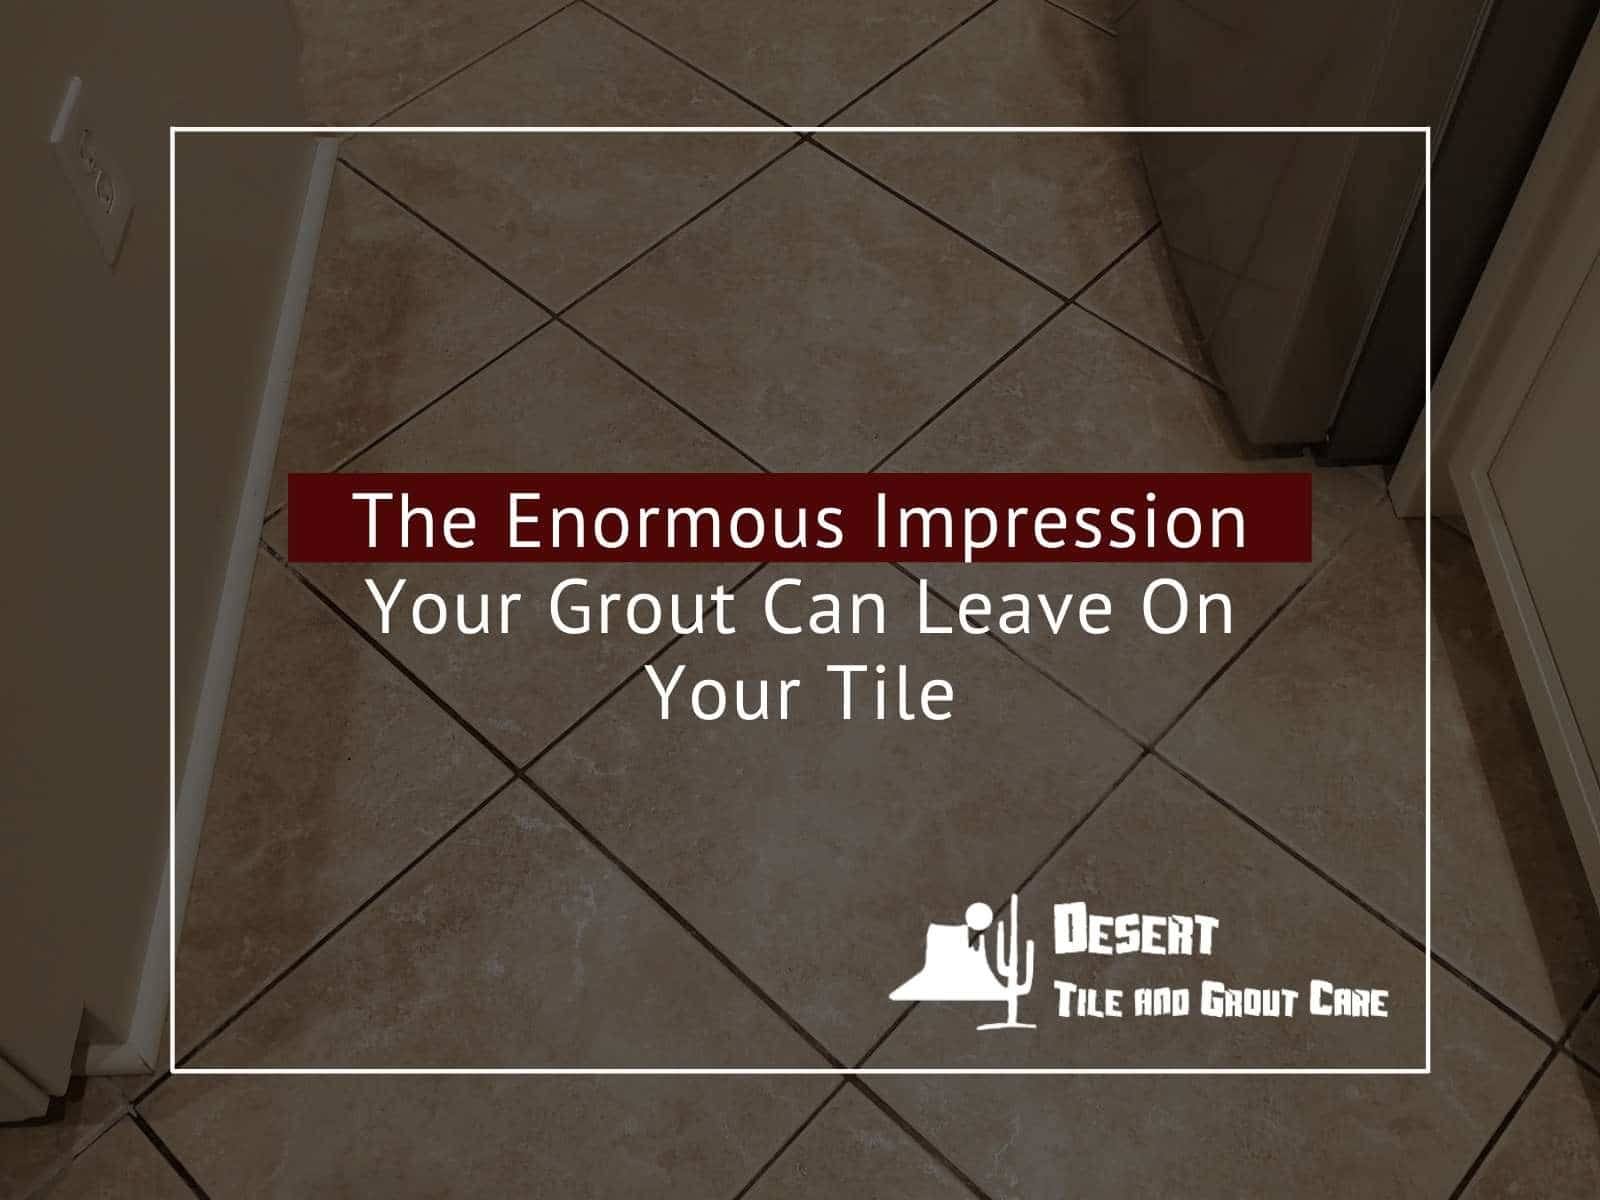 The Enormous Impression Your Grout Can Leave On Your Tile